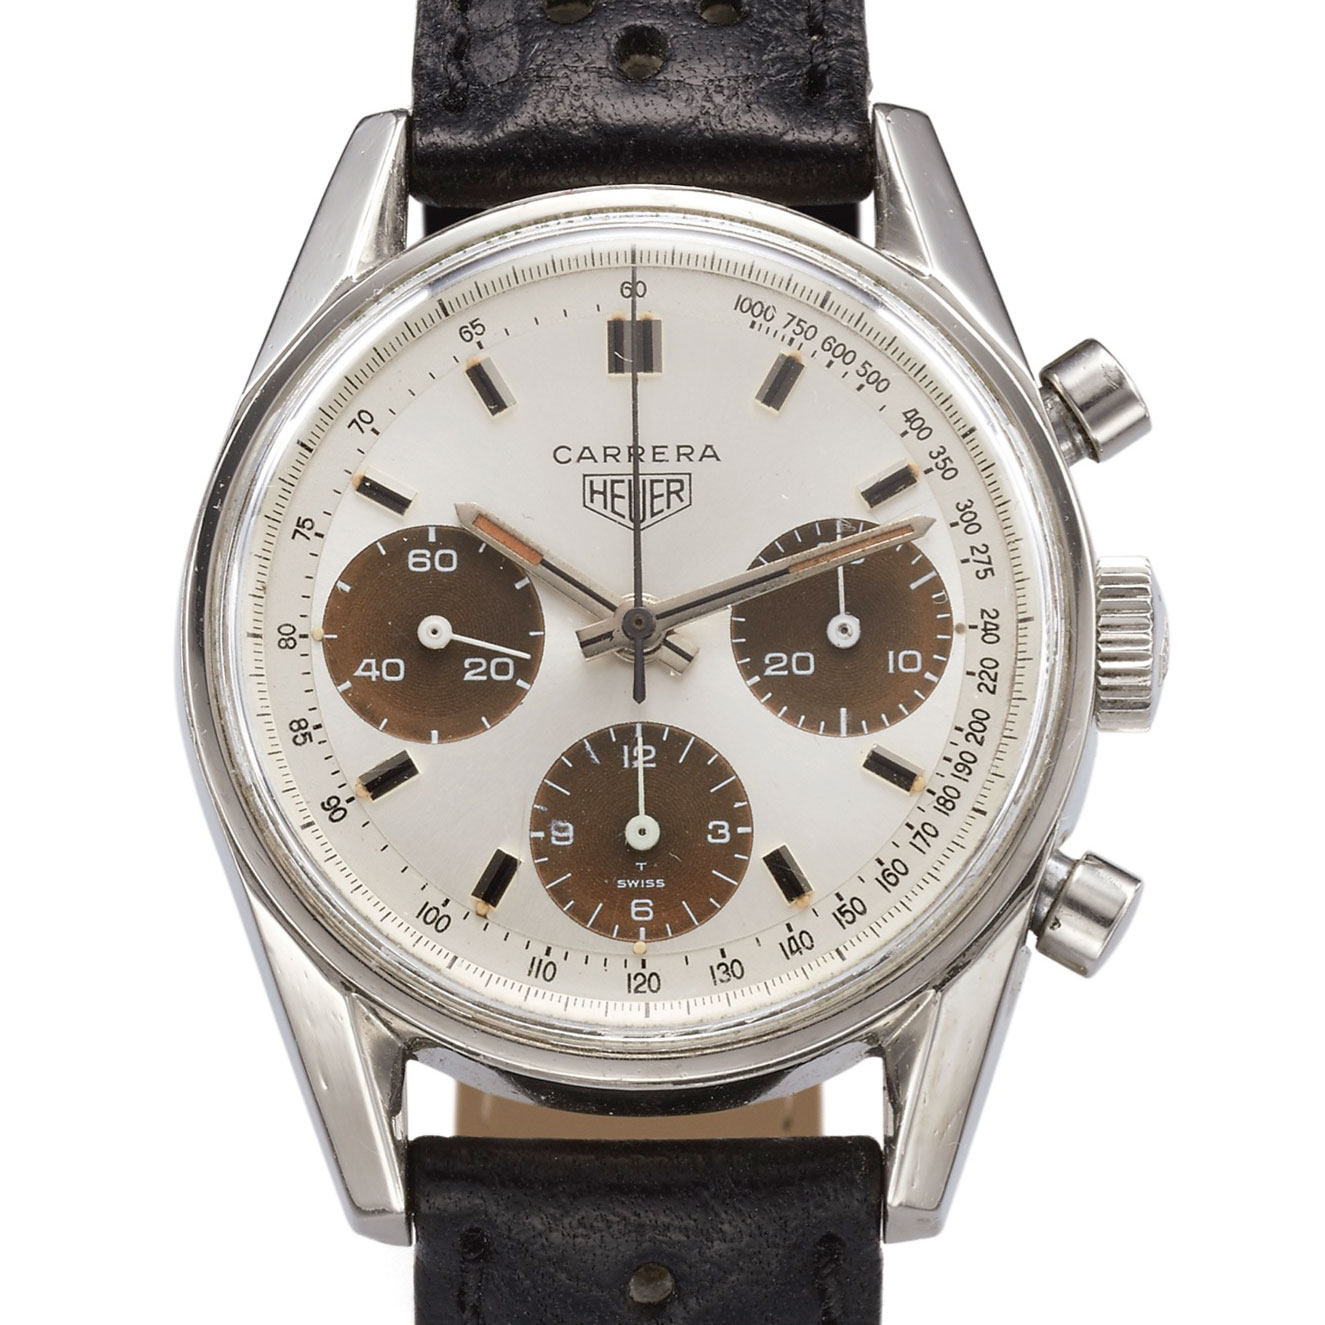 Valjoux 72 A Chronograph In A Million Revolution Watch